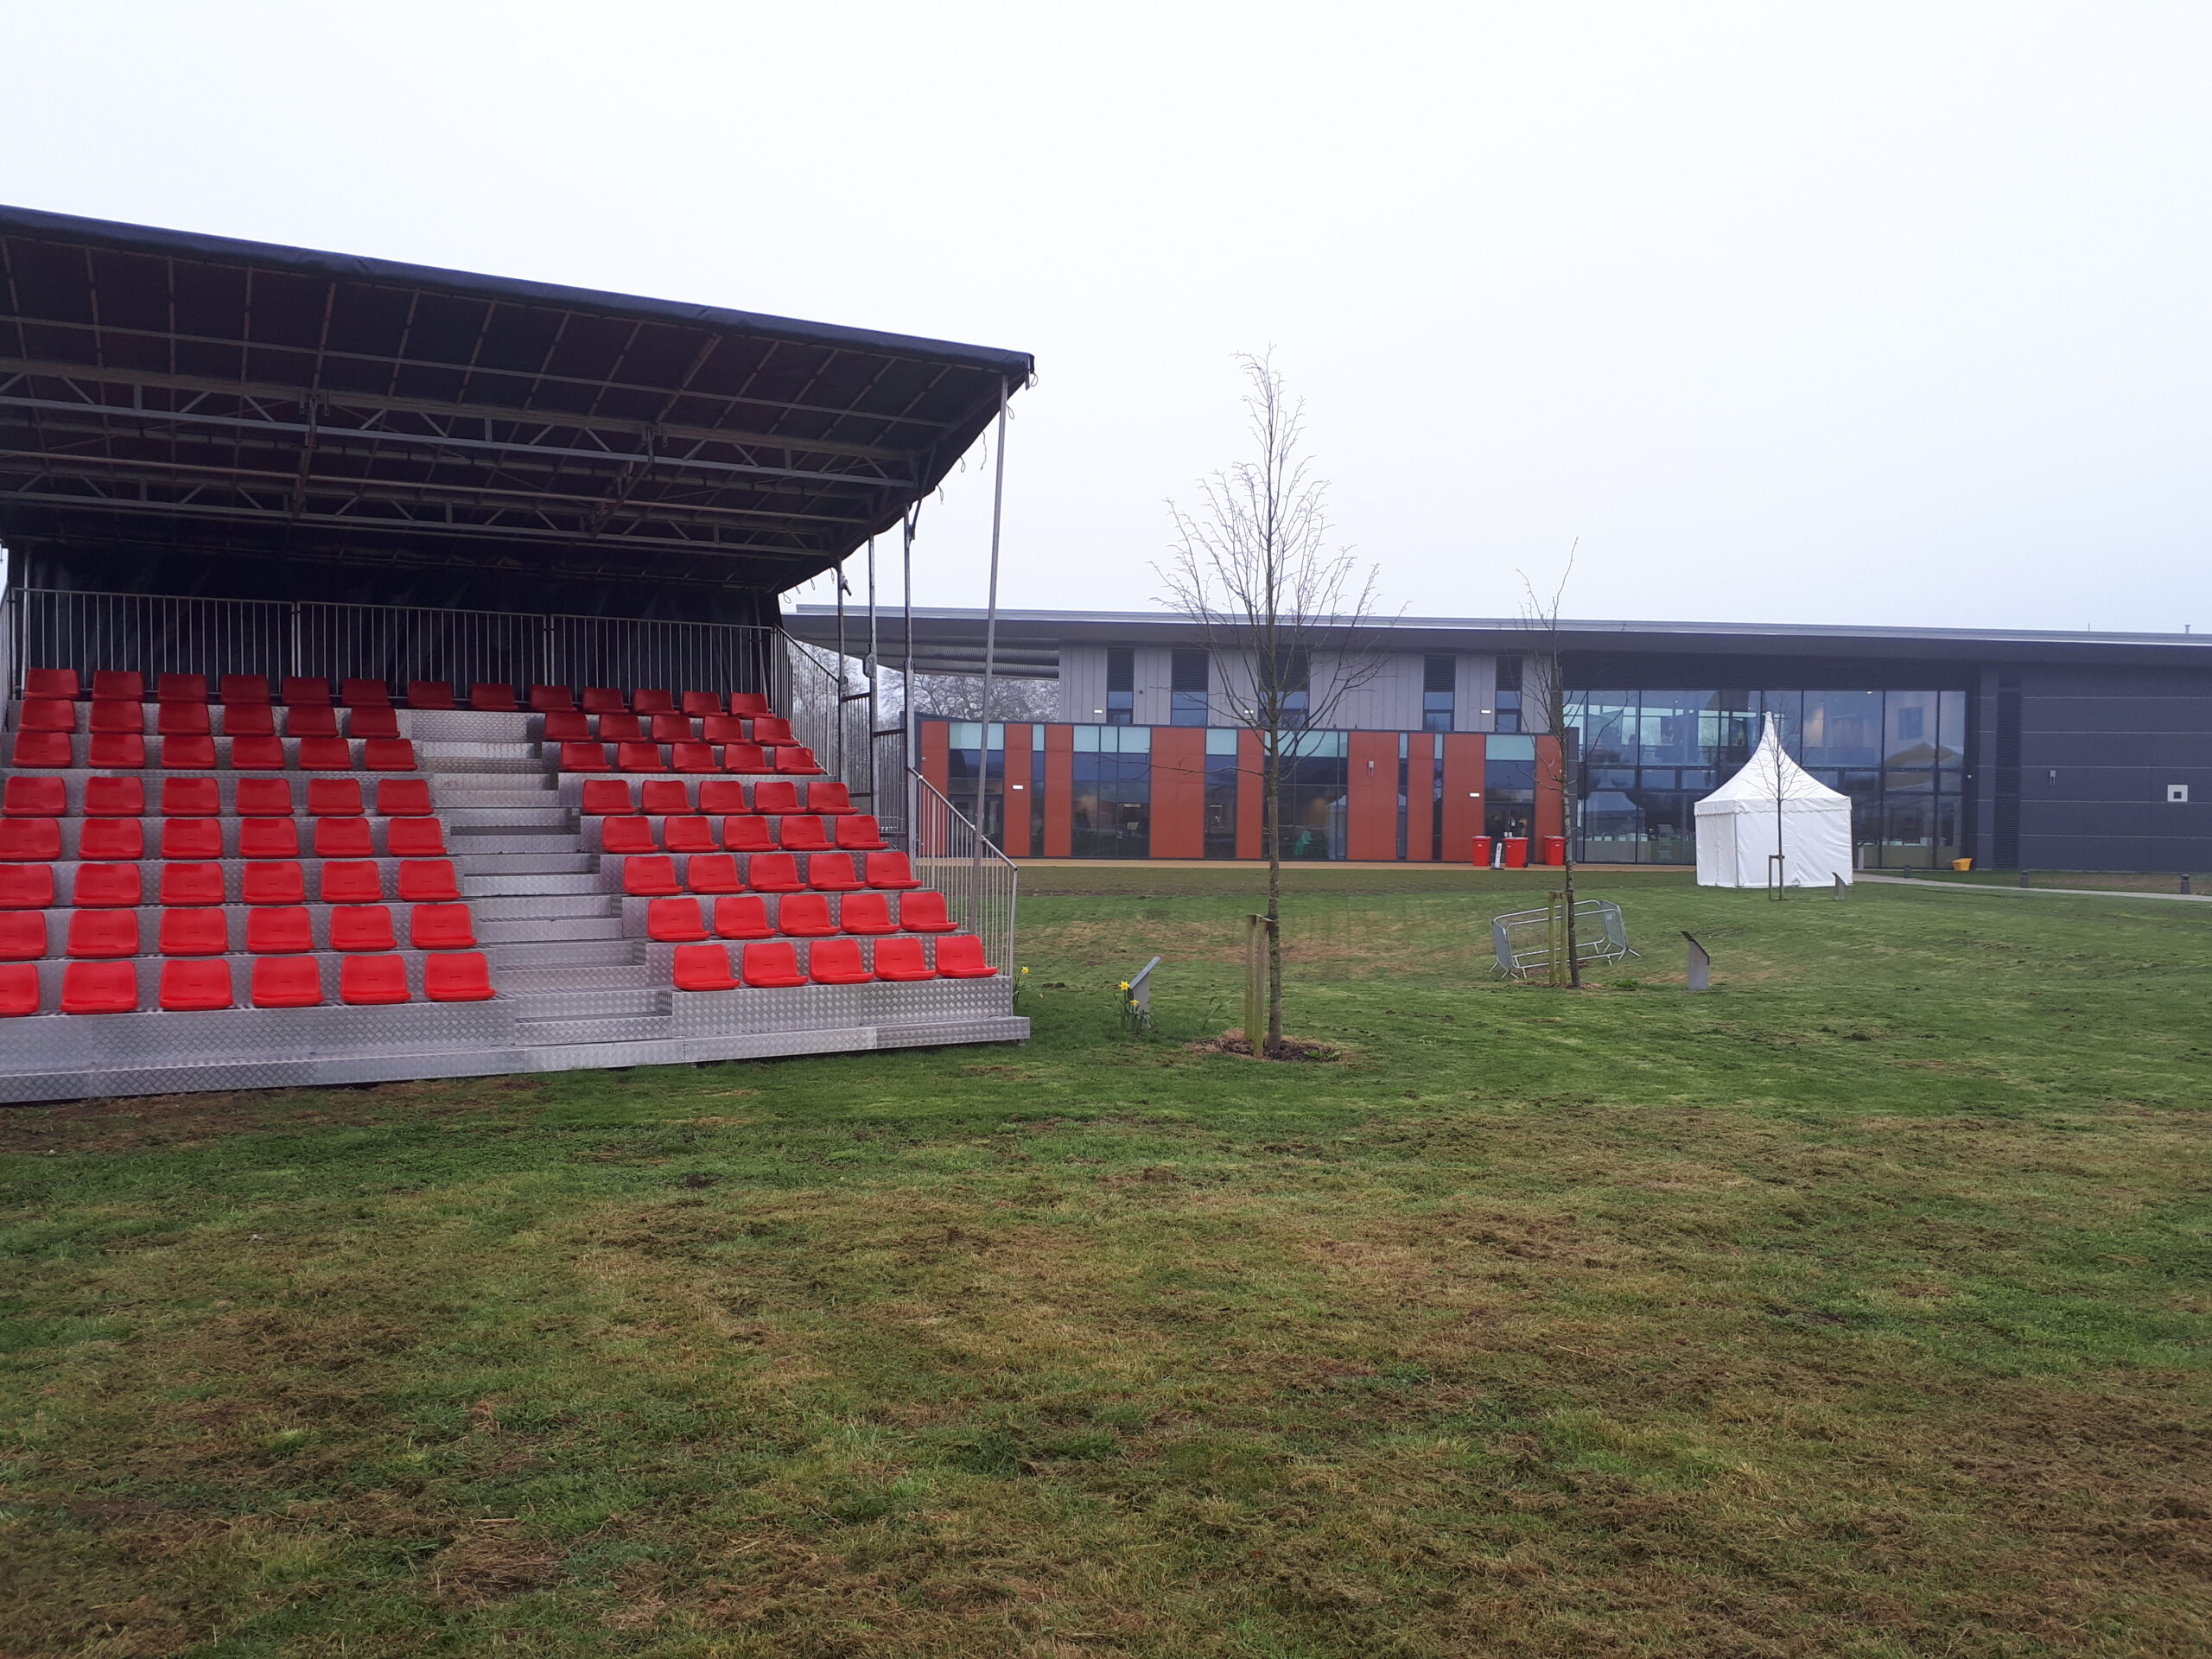 Grandstands and seating provided by EES Showhire for the IBCC opening event